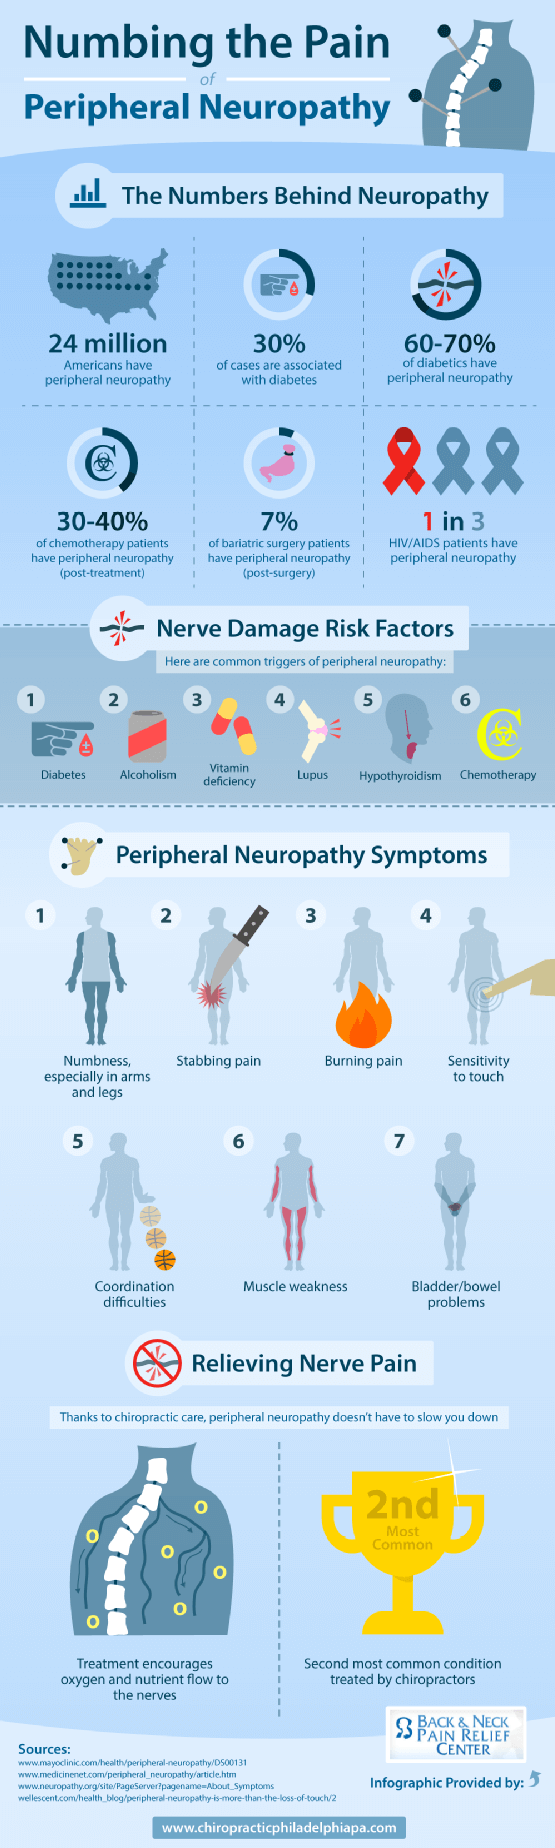 neuropathy-infographic